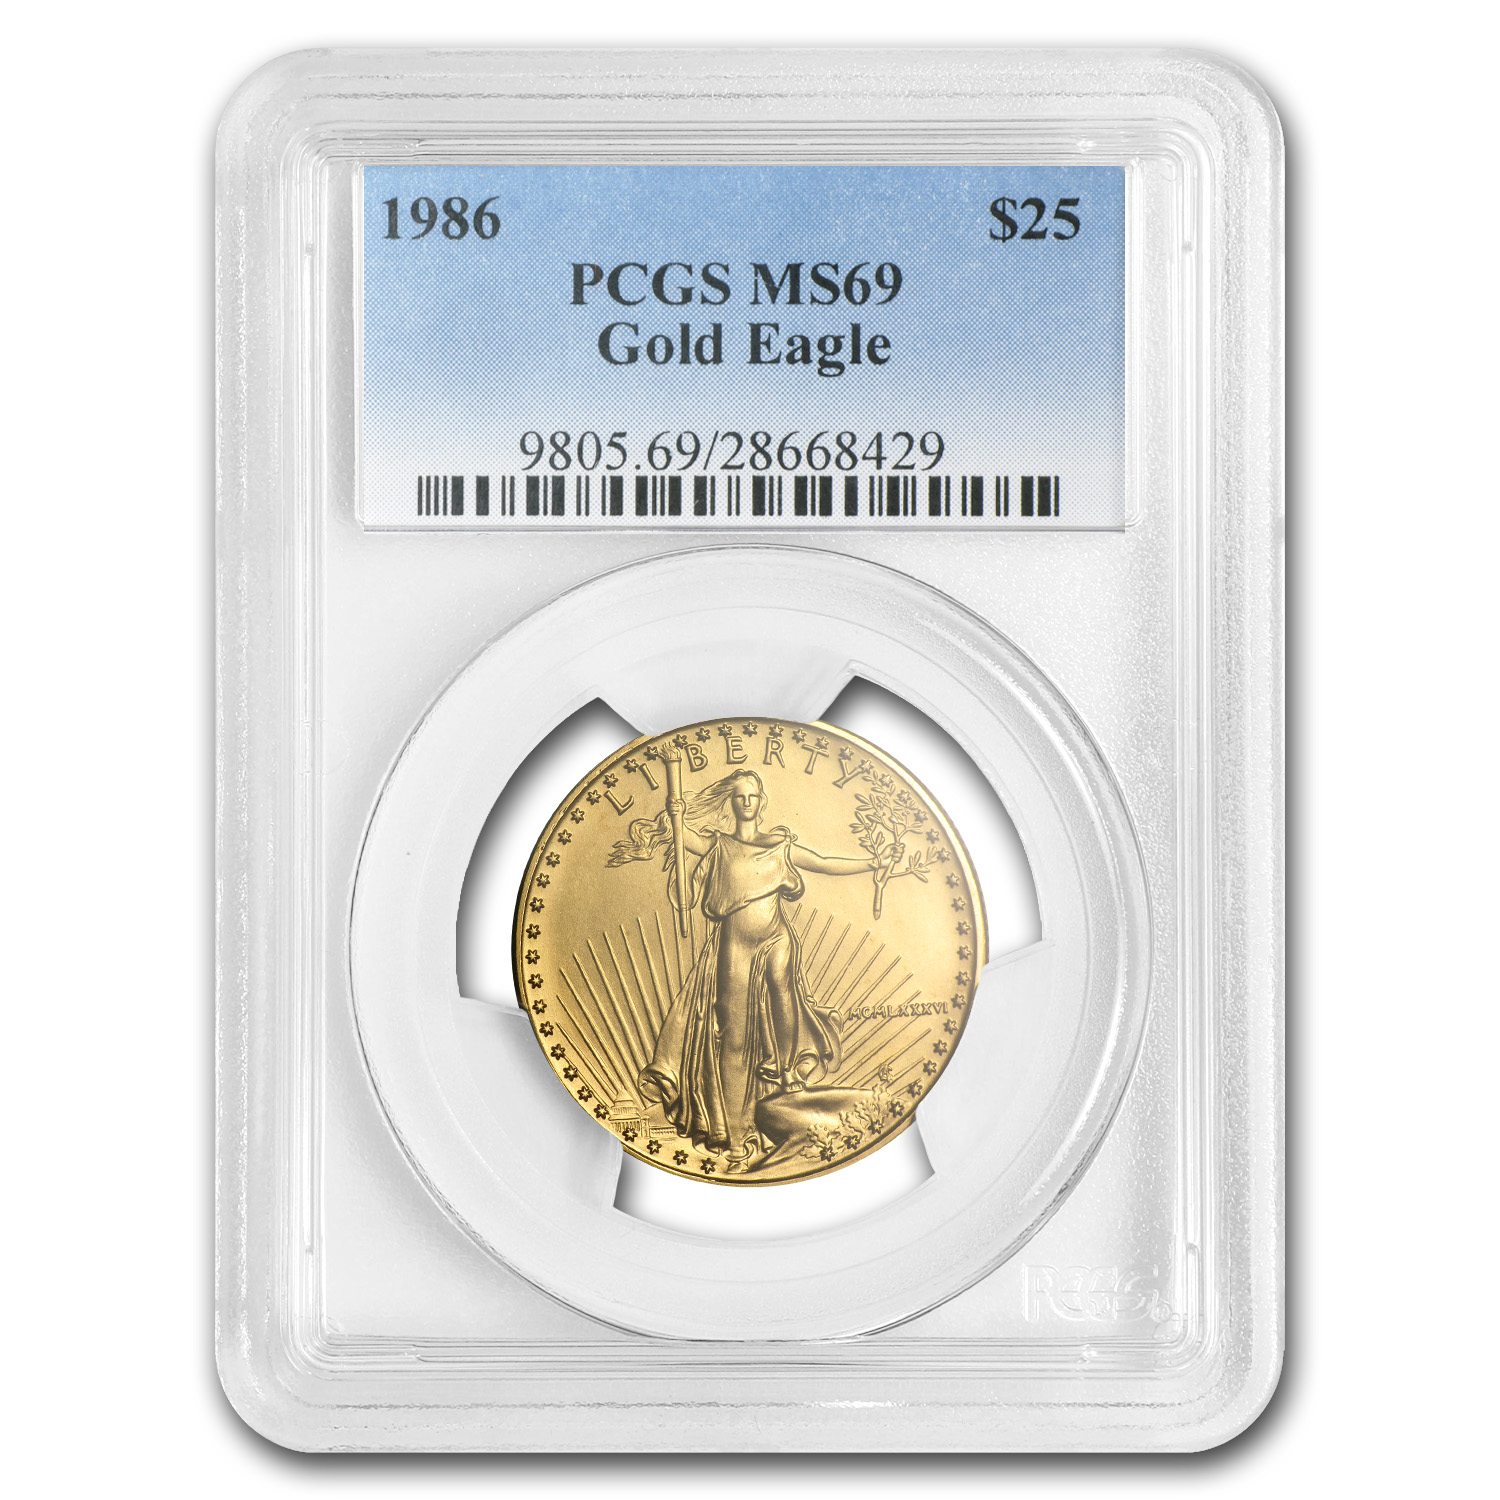 1986 1/2 oz Gold American Eagle MS-69 PCGS